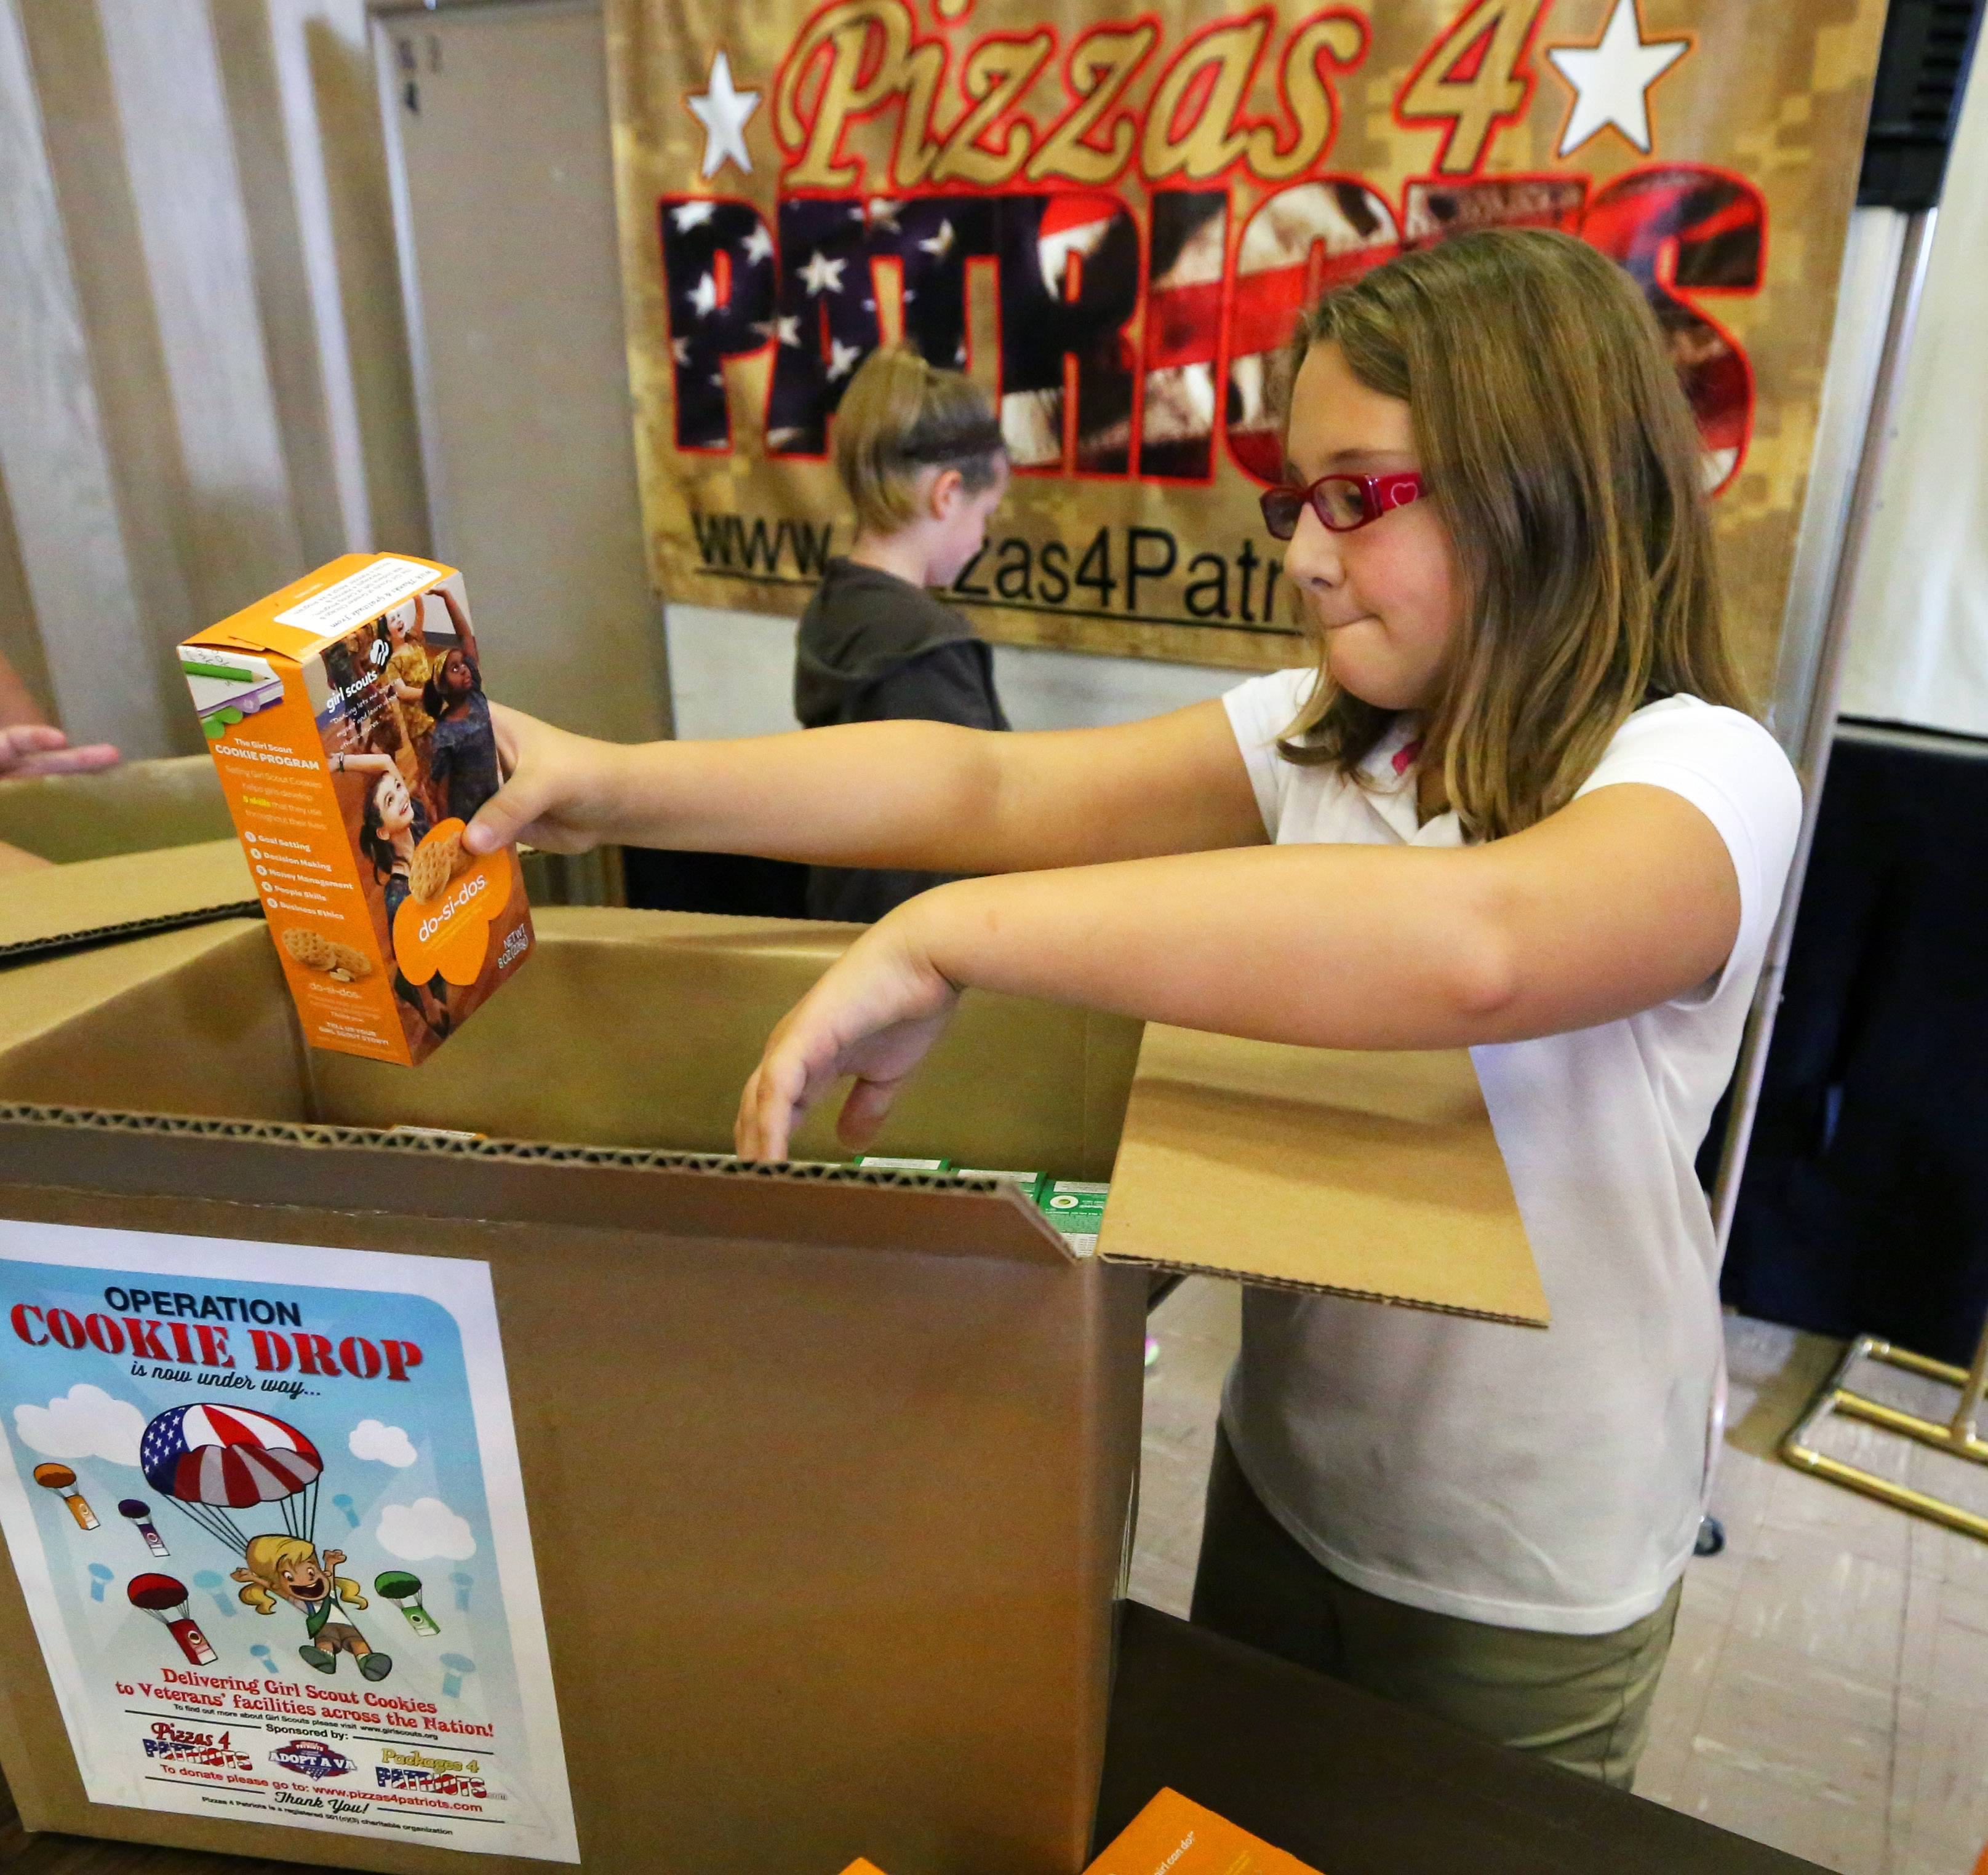 Mackenzie Nylander, 11, of Elk Grove Village, is part of the Girl Scouts' Operation Cookie Drop, which will deliver 13,000 boxes of cookies to veterans organizations in all 50 states.